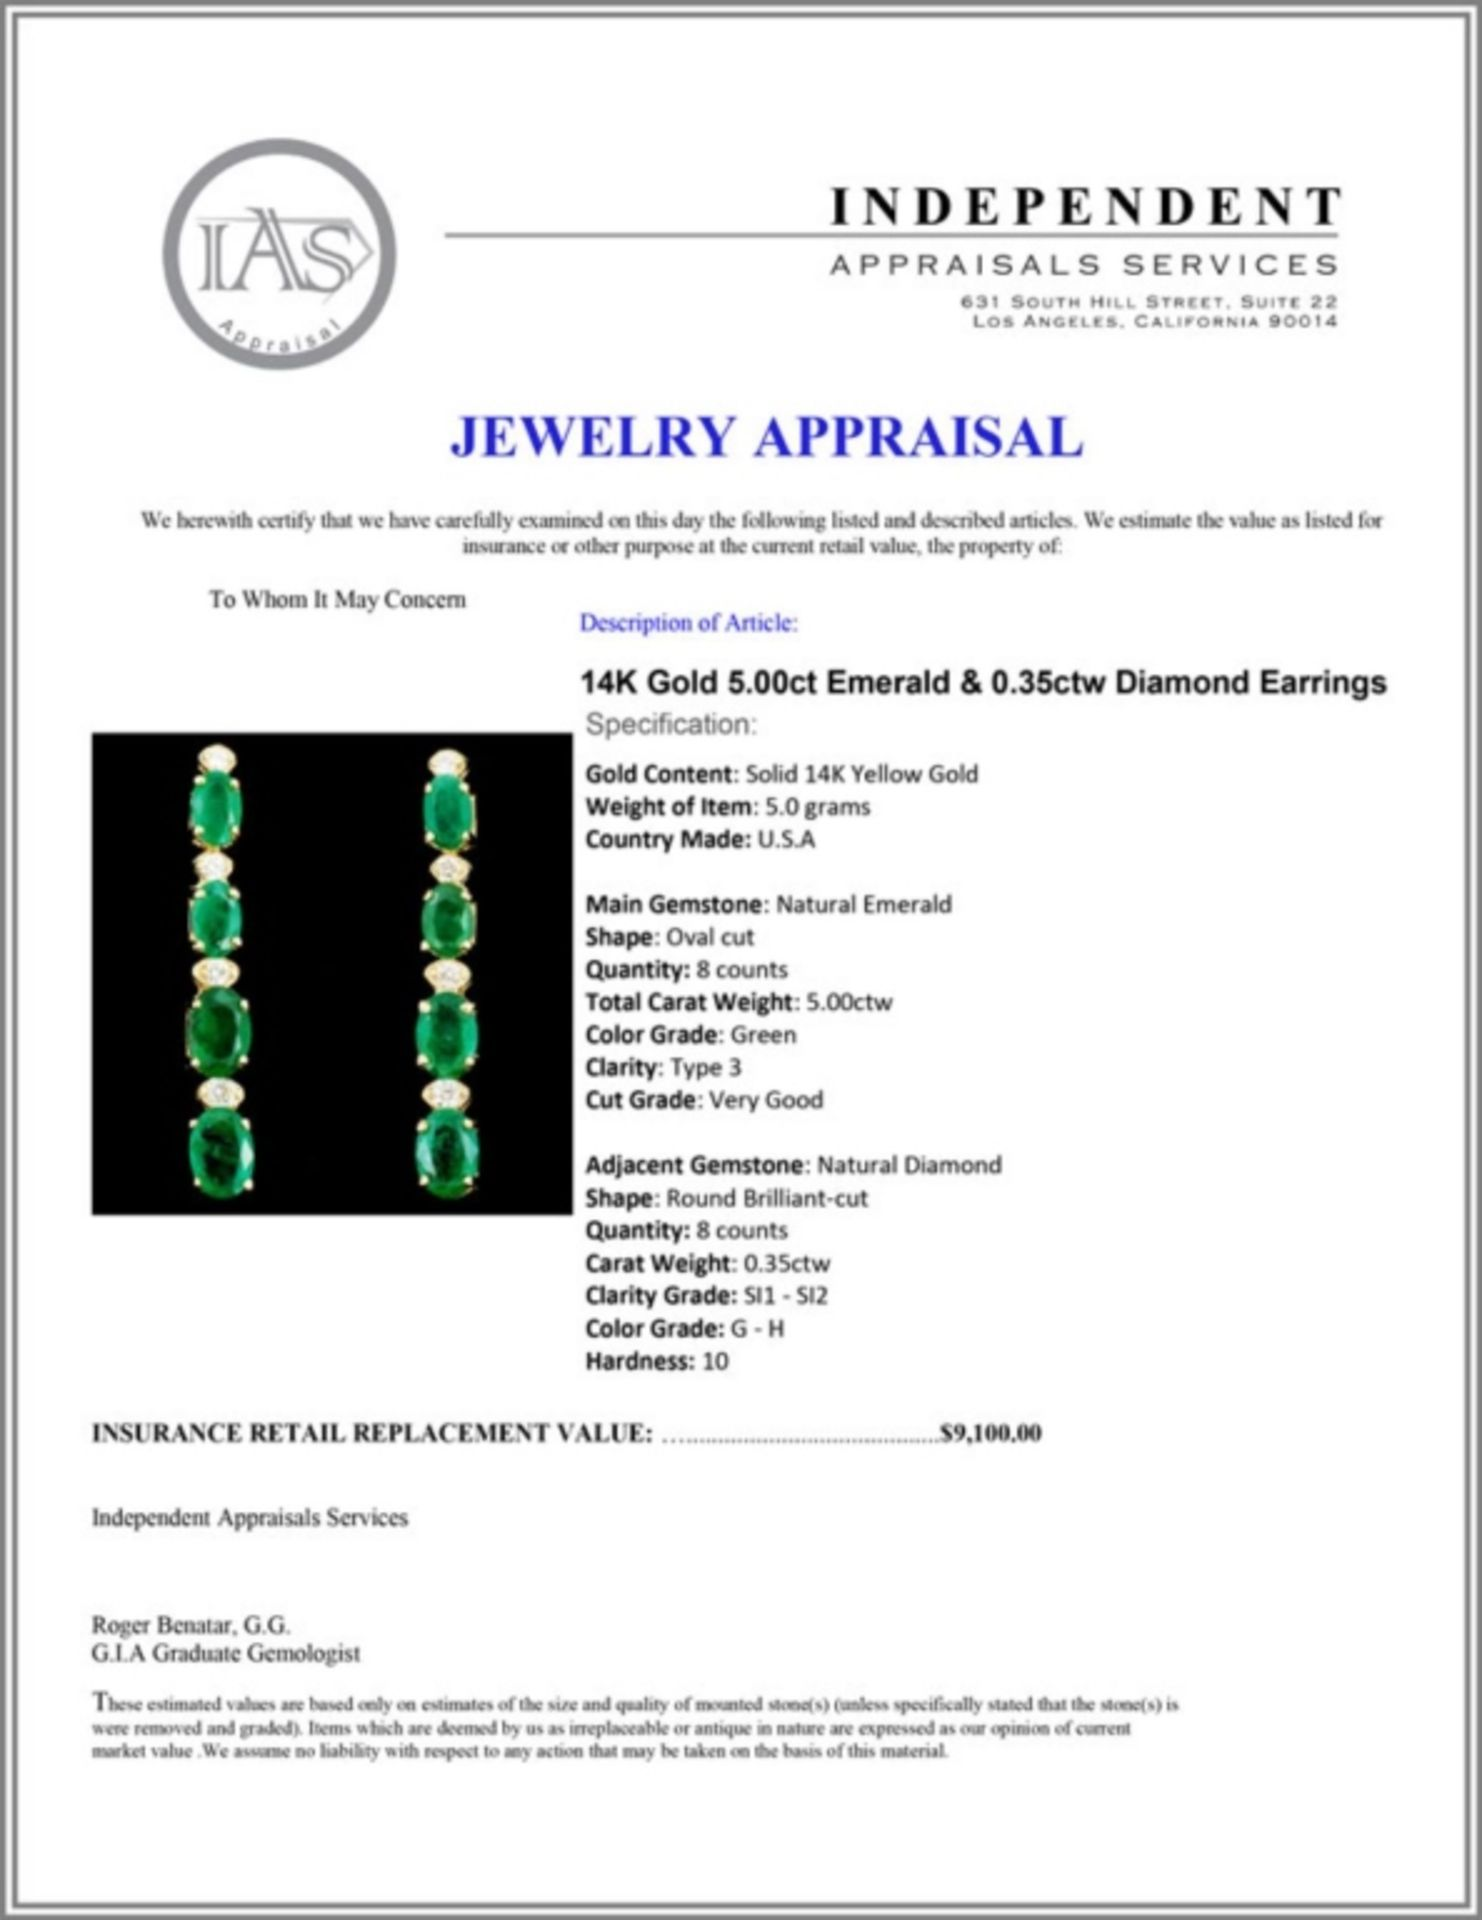 14K Gold 5.00ct Emerald & 0.35ctw Diamond Earrings - Image 3 of 3